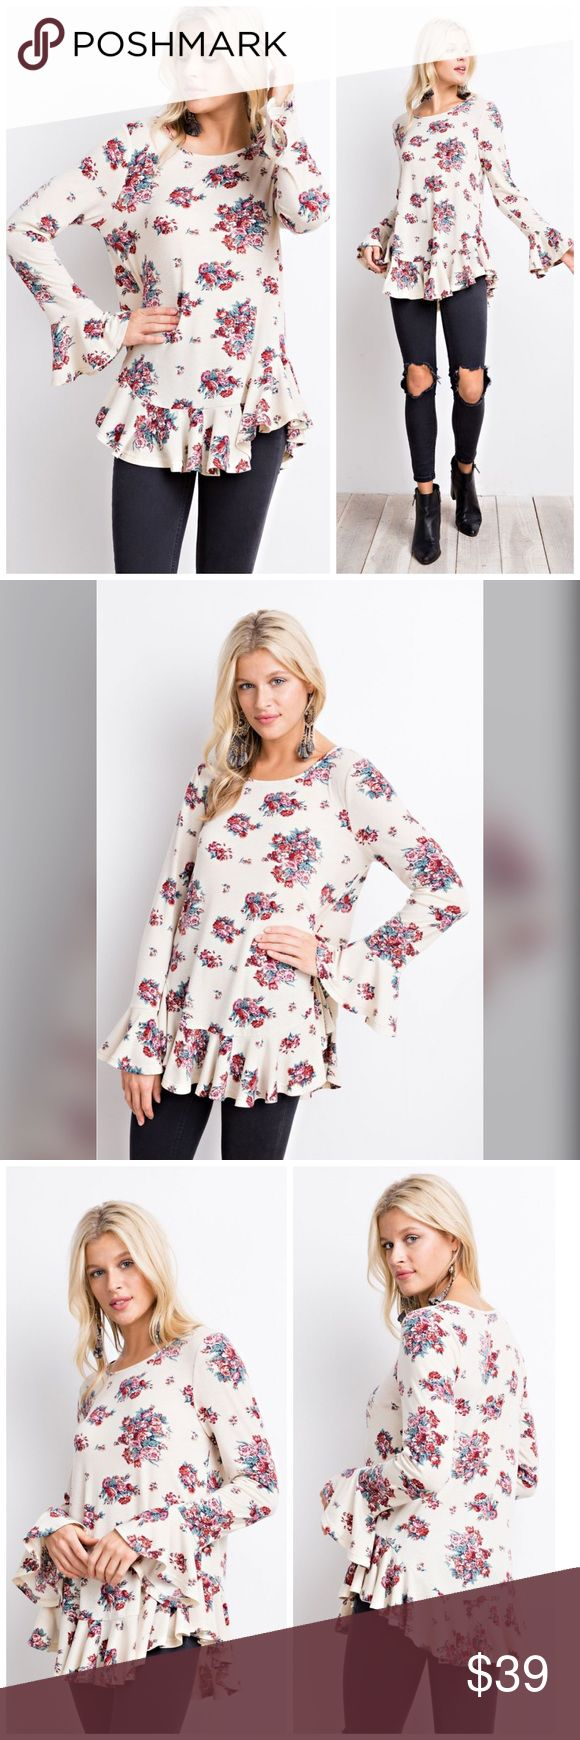 PREORDER New For Spring! Ruffled Floral Tunic! PRETTY FLORAL LONG SLEEVE TOP FEATURING A FEMME RUFFLE DETAIL, PRINTED RAYON SPAN RUFFLED BOTTOM TUNIC Tops Tunics